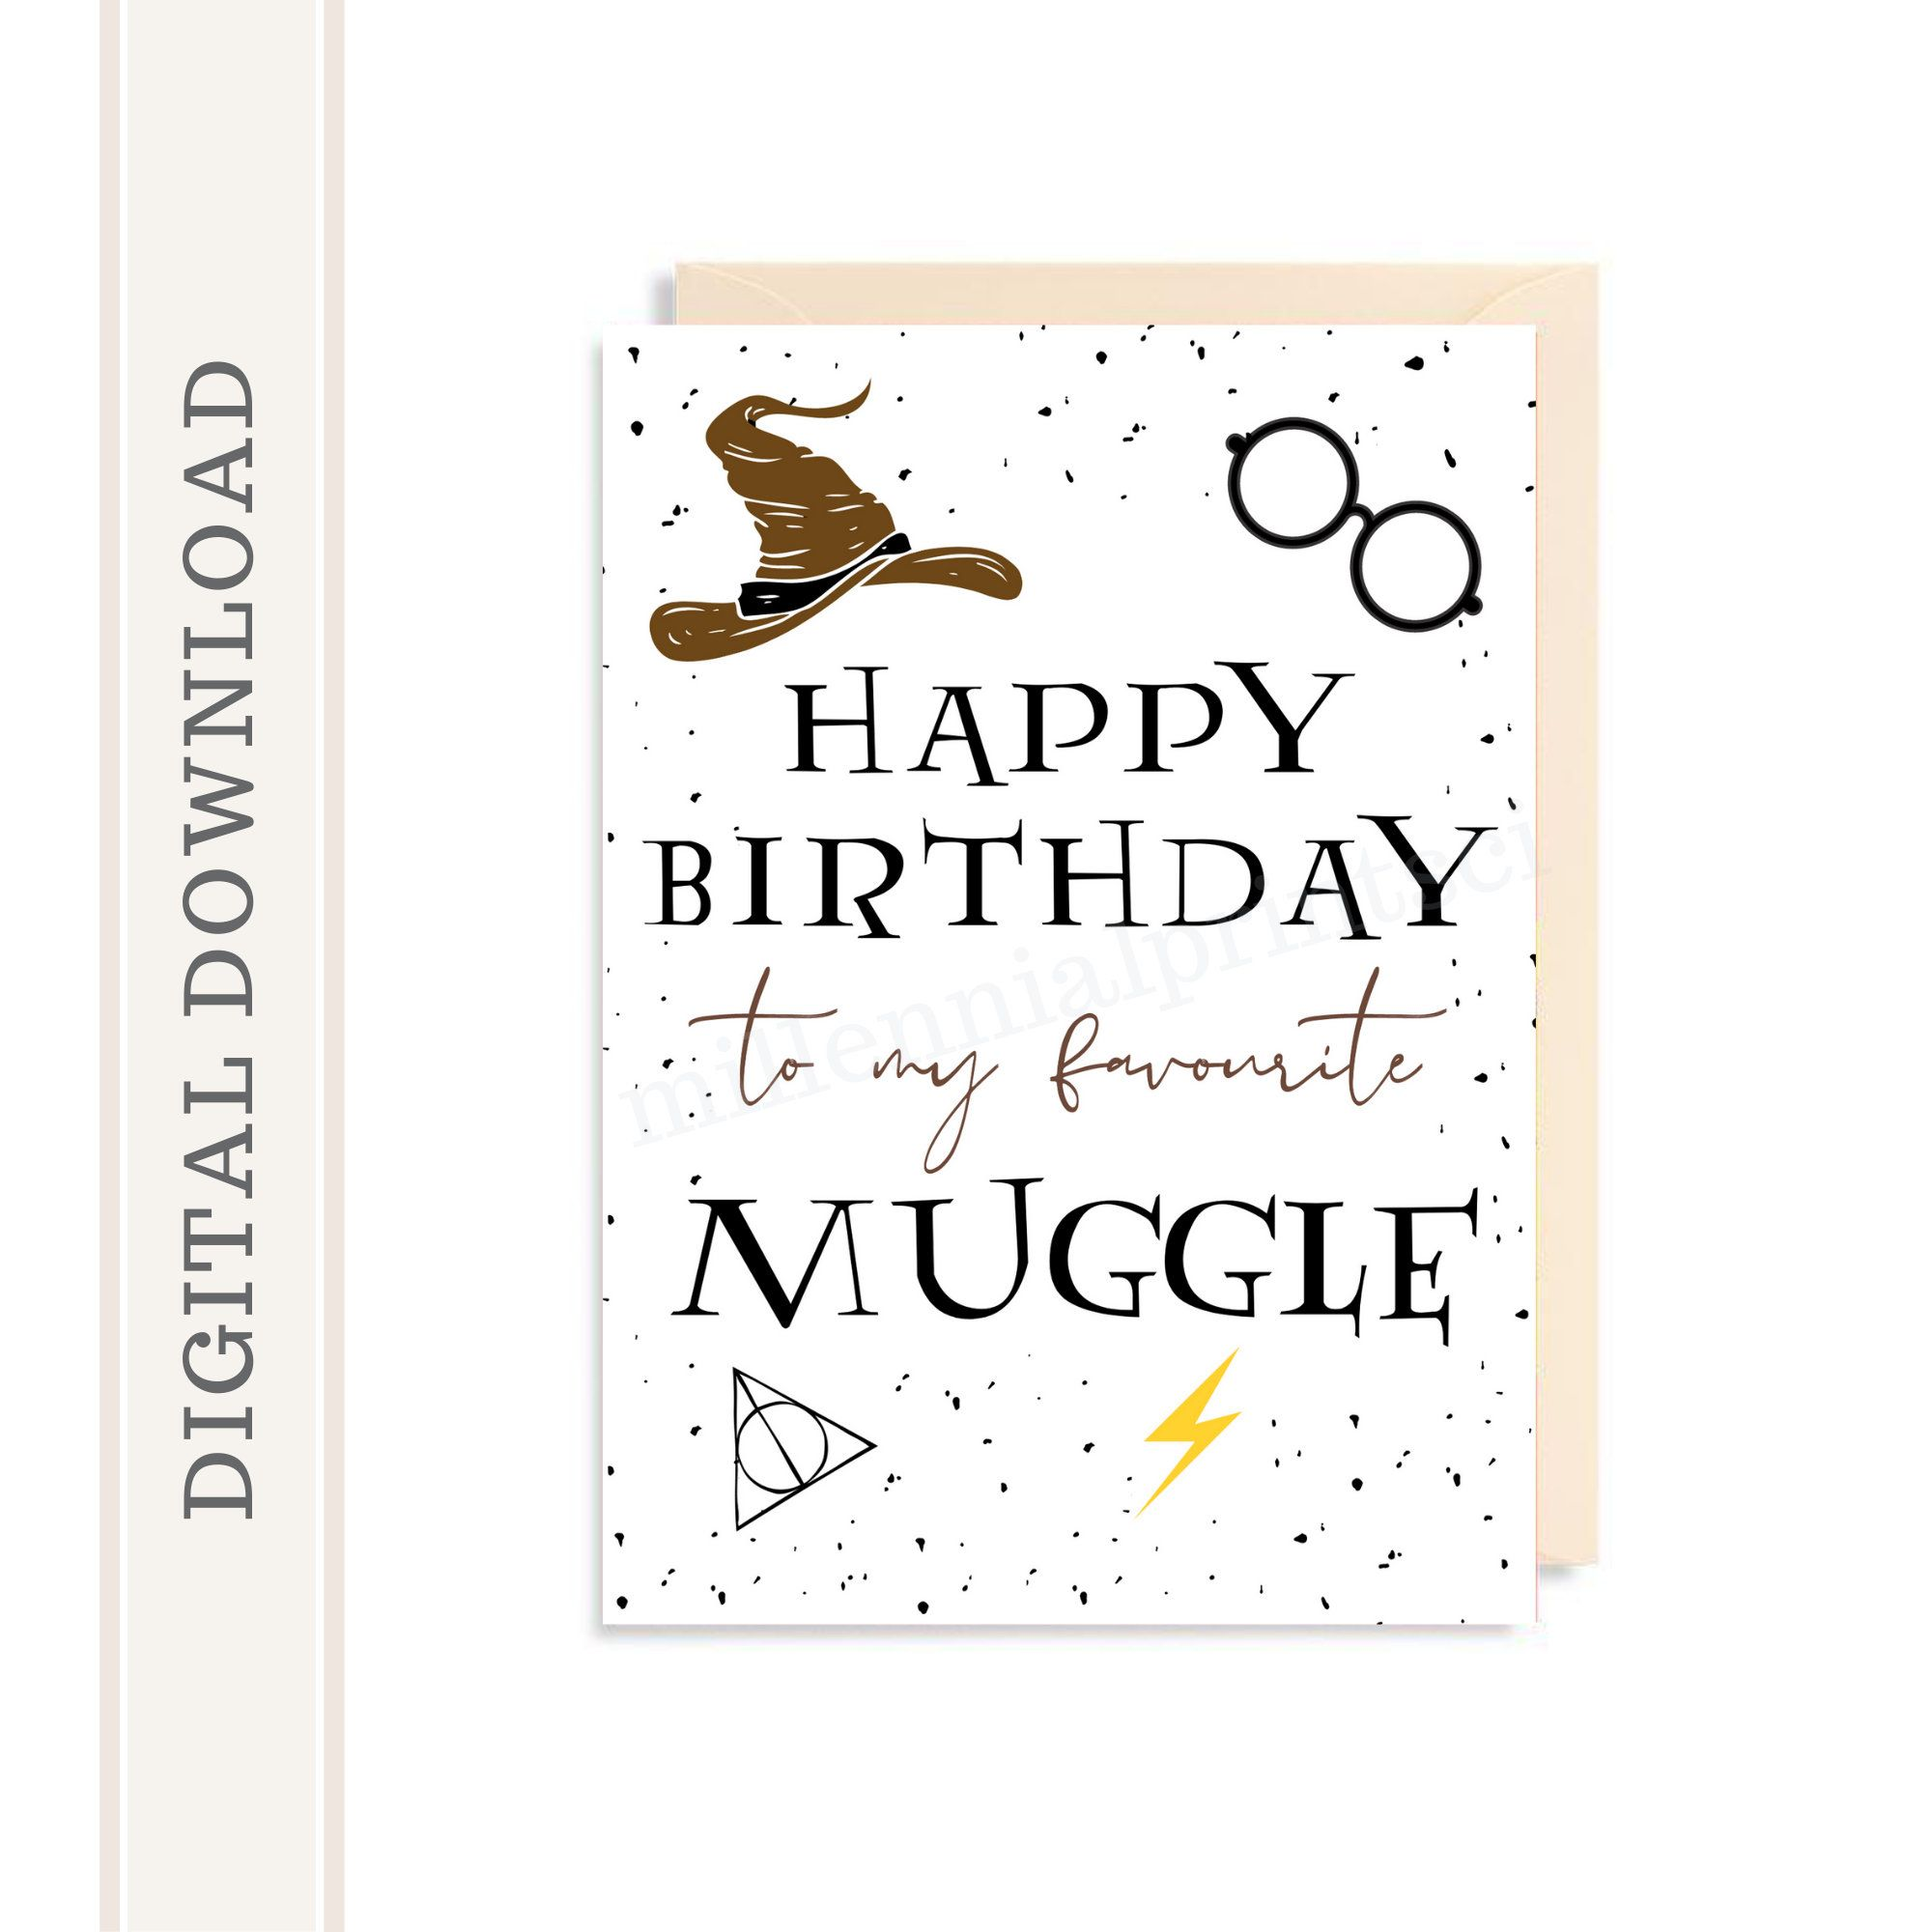 Printable Harry Potter Birthday Card Happy Birthday Card Etsy In 2020 Harry Potter Birthday Cards Happy Birthday Cards Printable Digital Birthday Cards